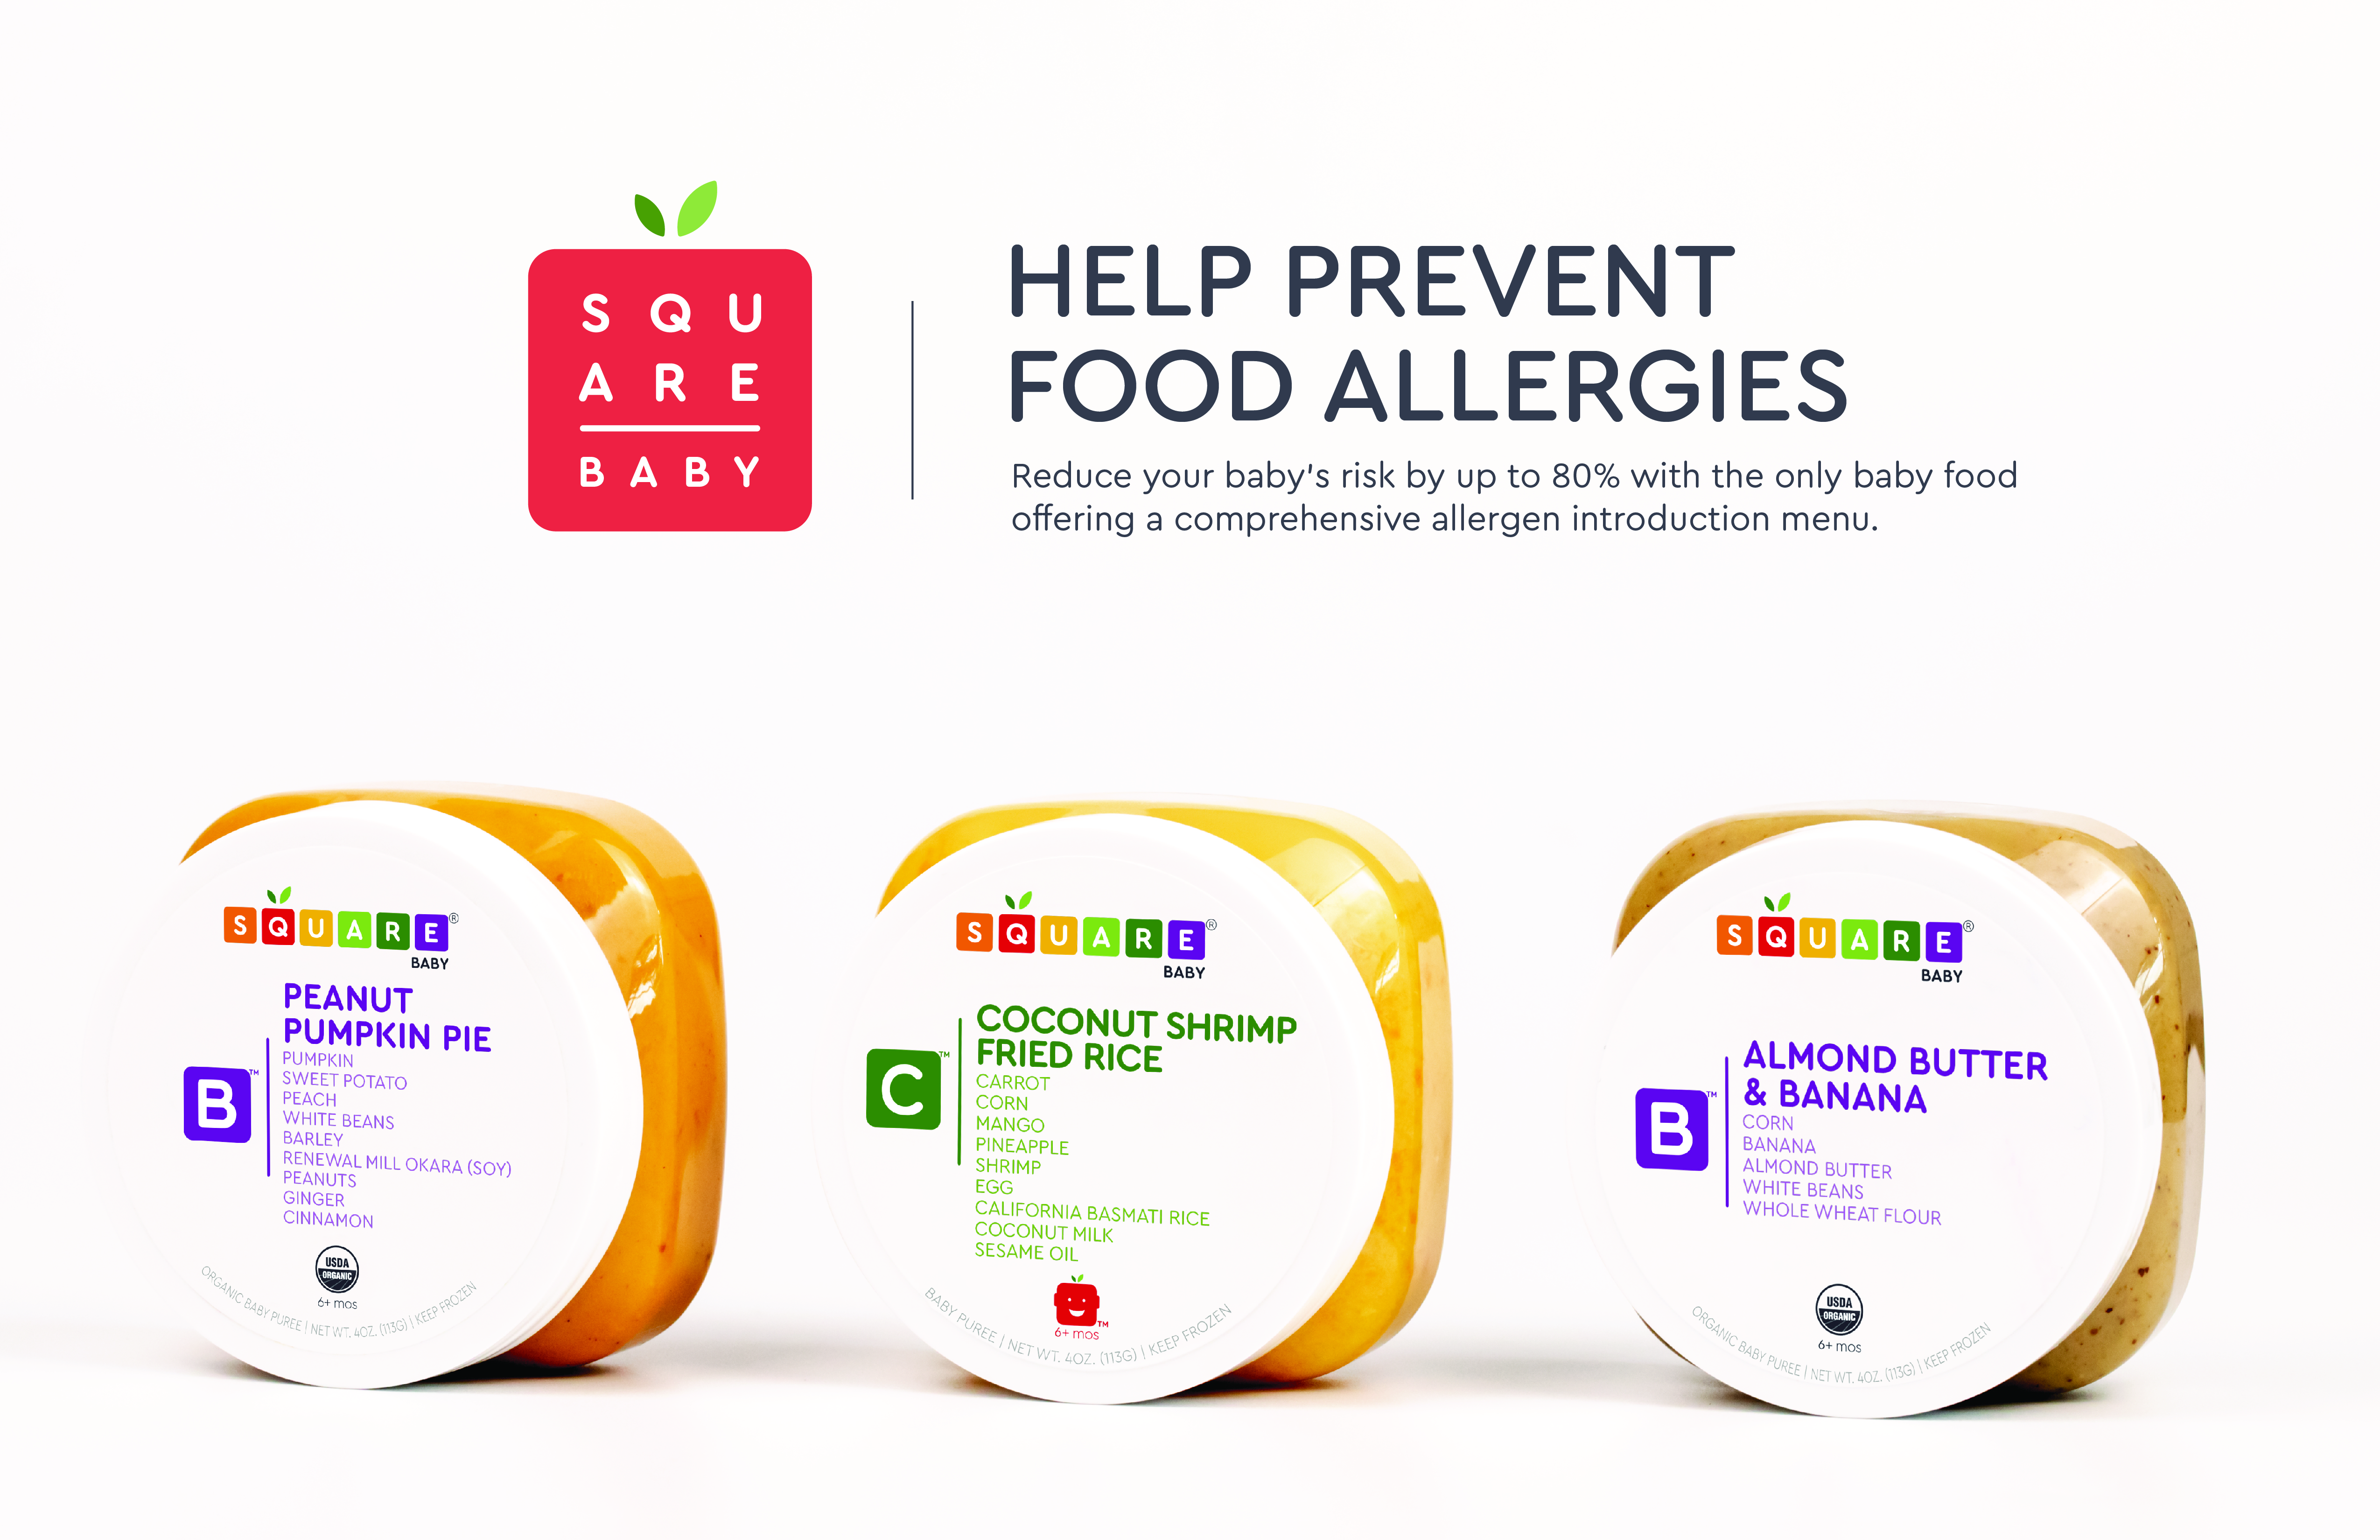 With New Launches, Square Baby Becomes Only Baby Food Offering All Top 8 Allergens